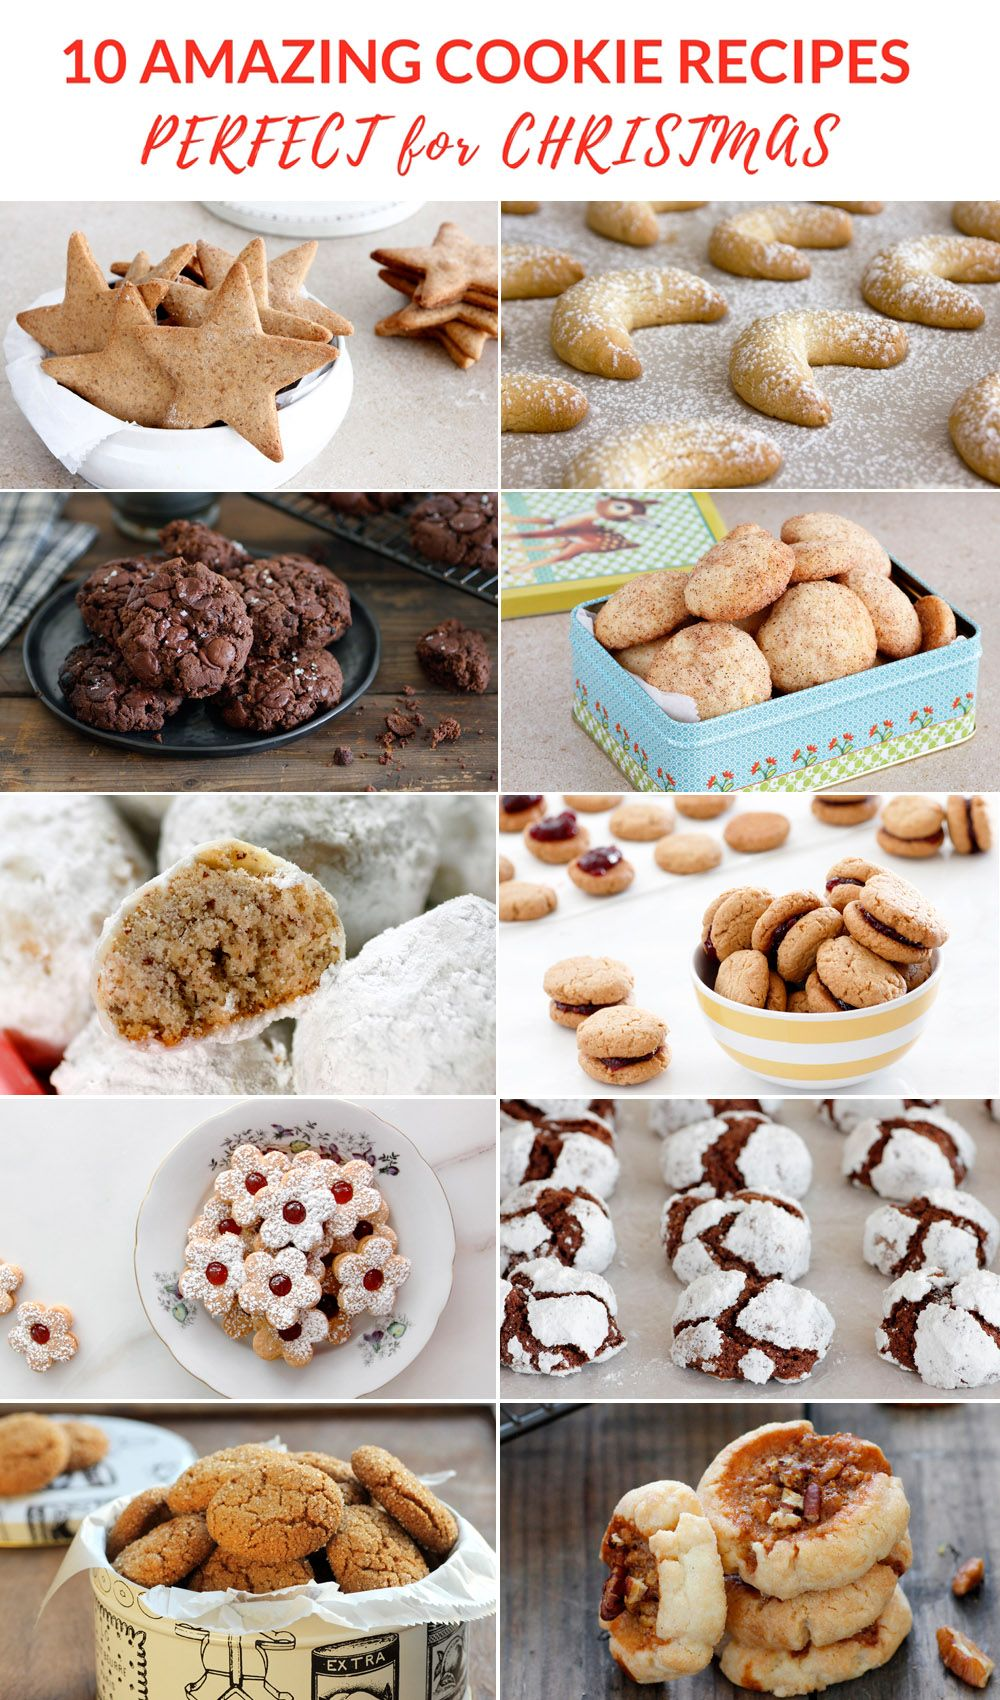 10 Amazing Cookie Recipes for Christmas